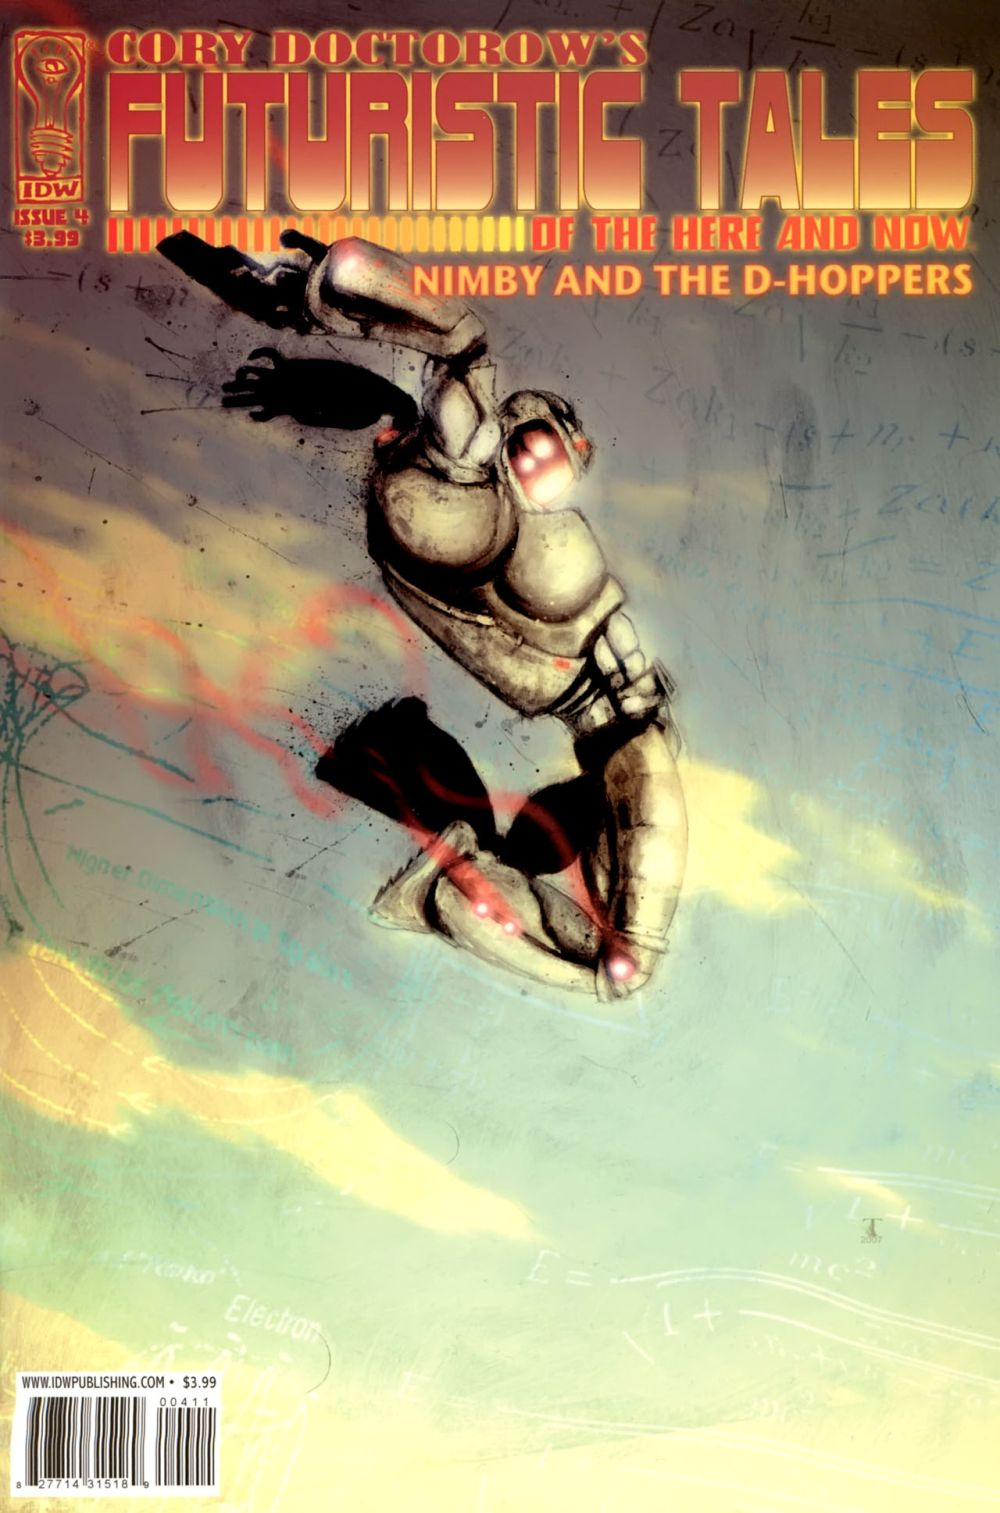 Futuristic Tales Of The Here And Now [IDW] V1 0004.jpg